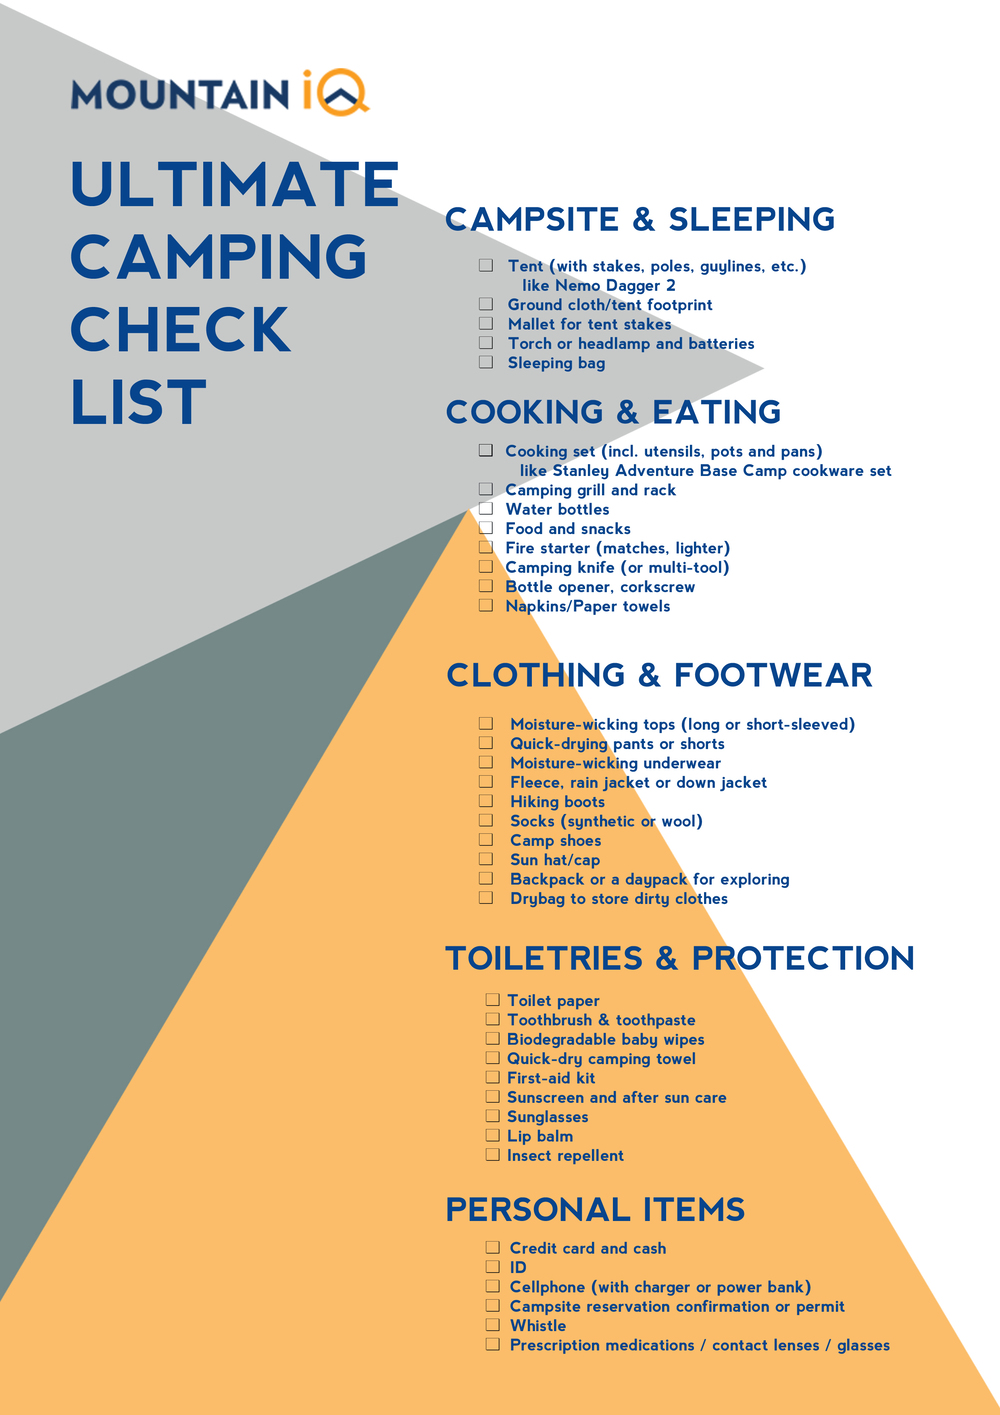 ULTIMATE CAMPING CHECKLIST by MOUNTAINIQ